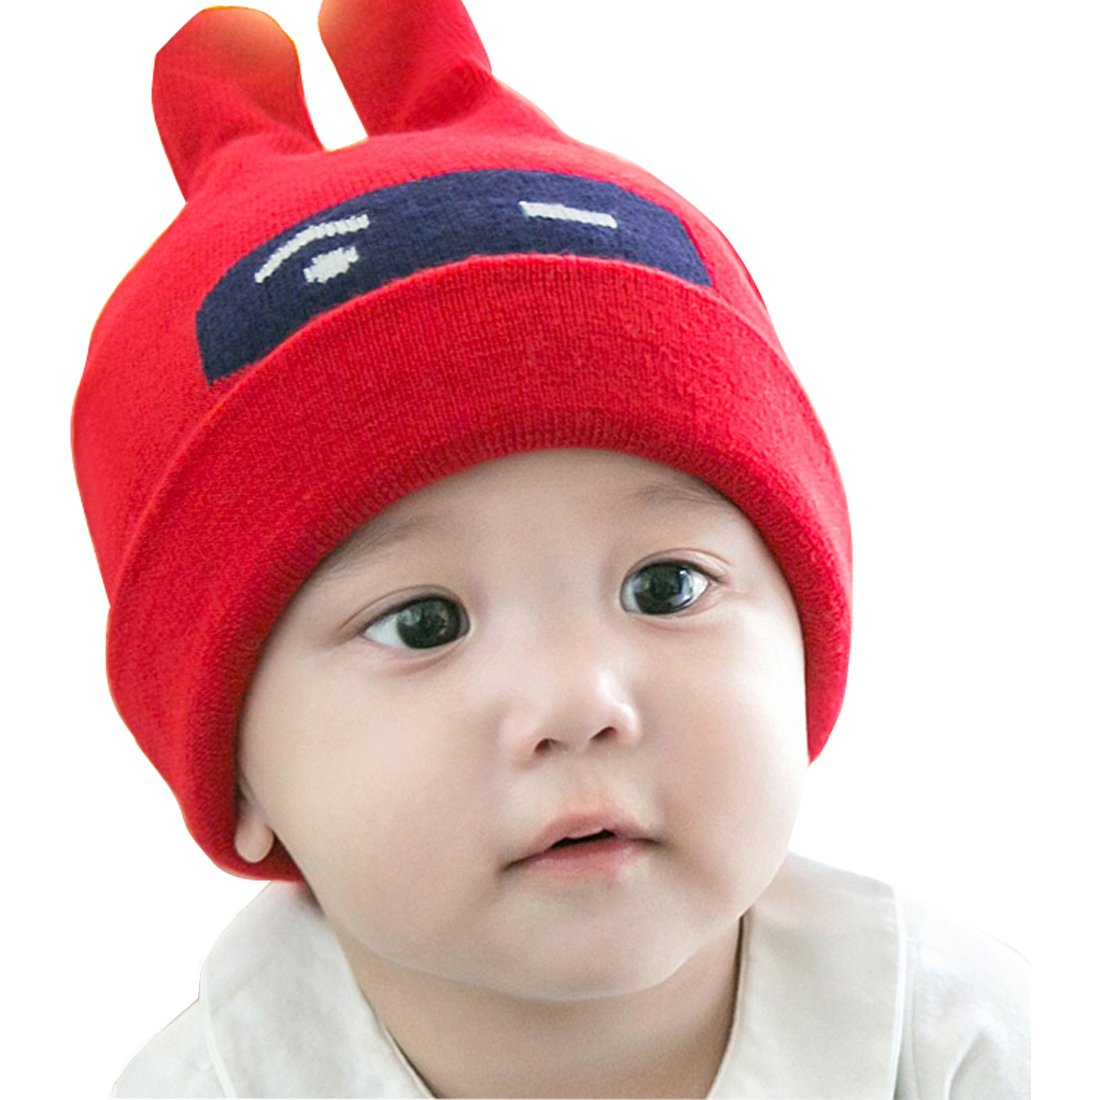 LAROK WAZZIT Cutest Bunny Ears Winter Baby Beanies Cap Warm Knit Hat Eyes Printed Warmer Wool Hemming for Kids 0-5 Years